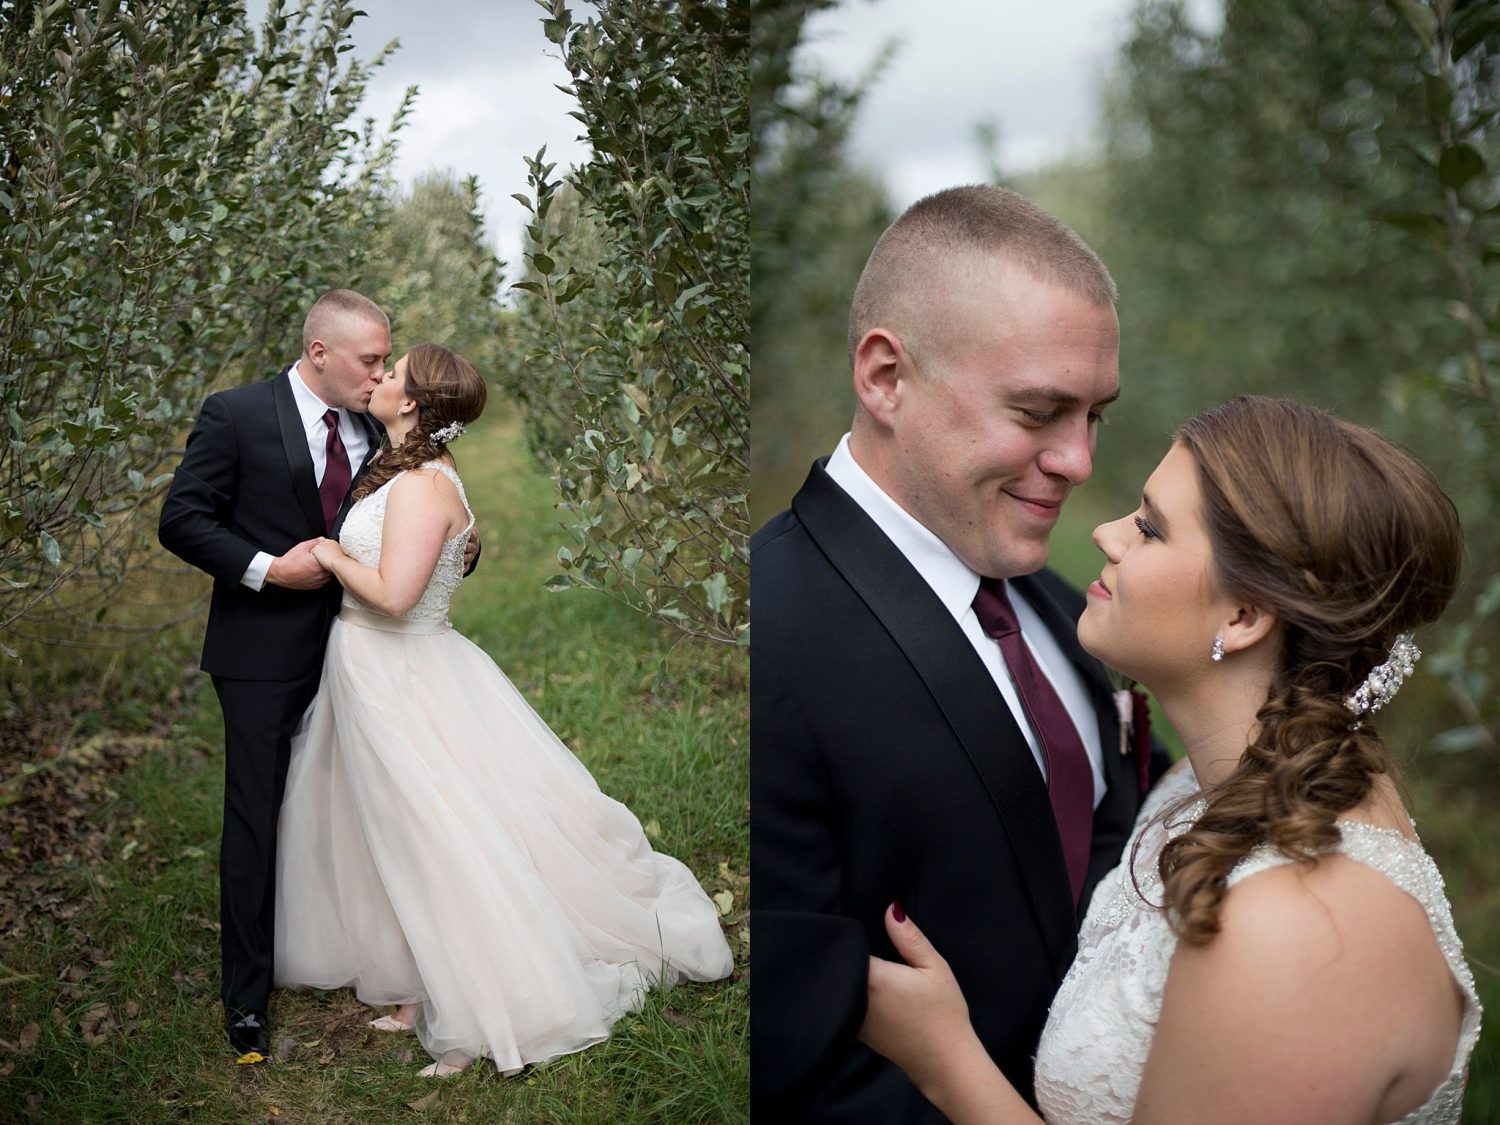 The bride and groom kiss as they stand framed in a row of apple trees.